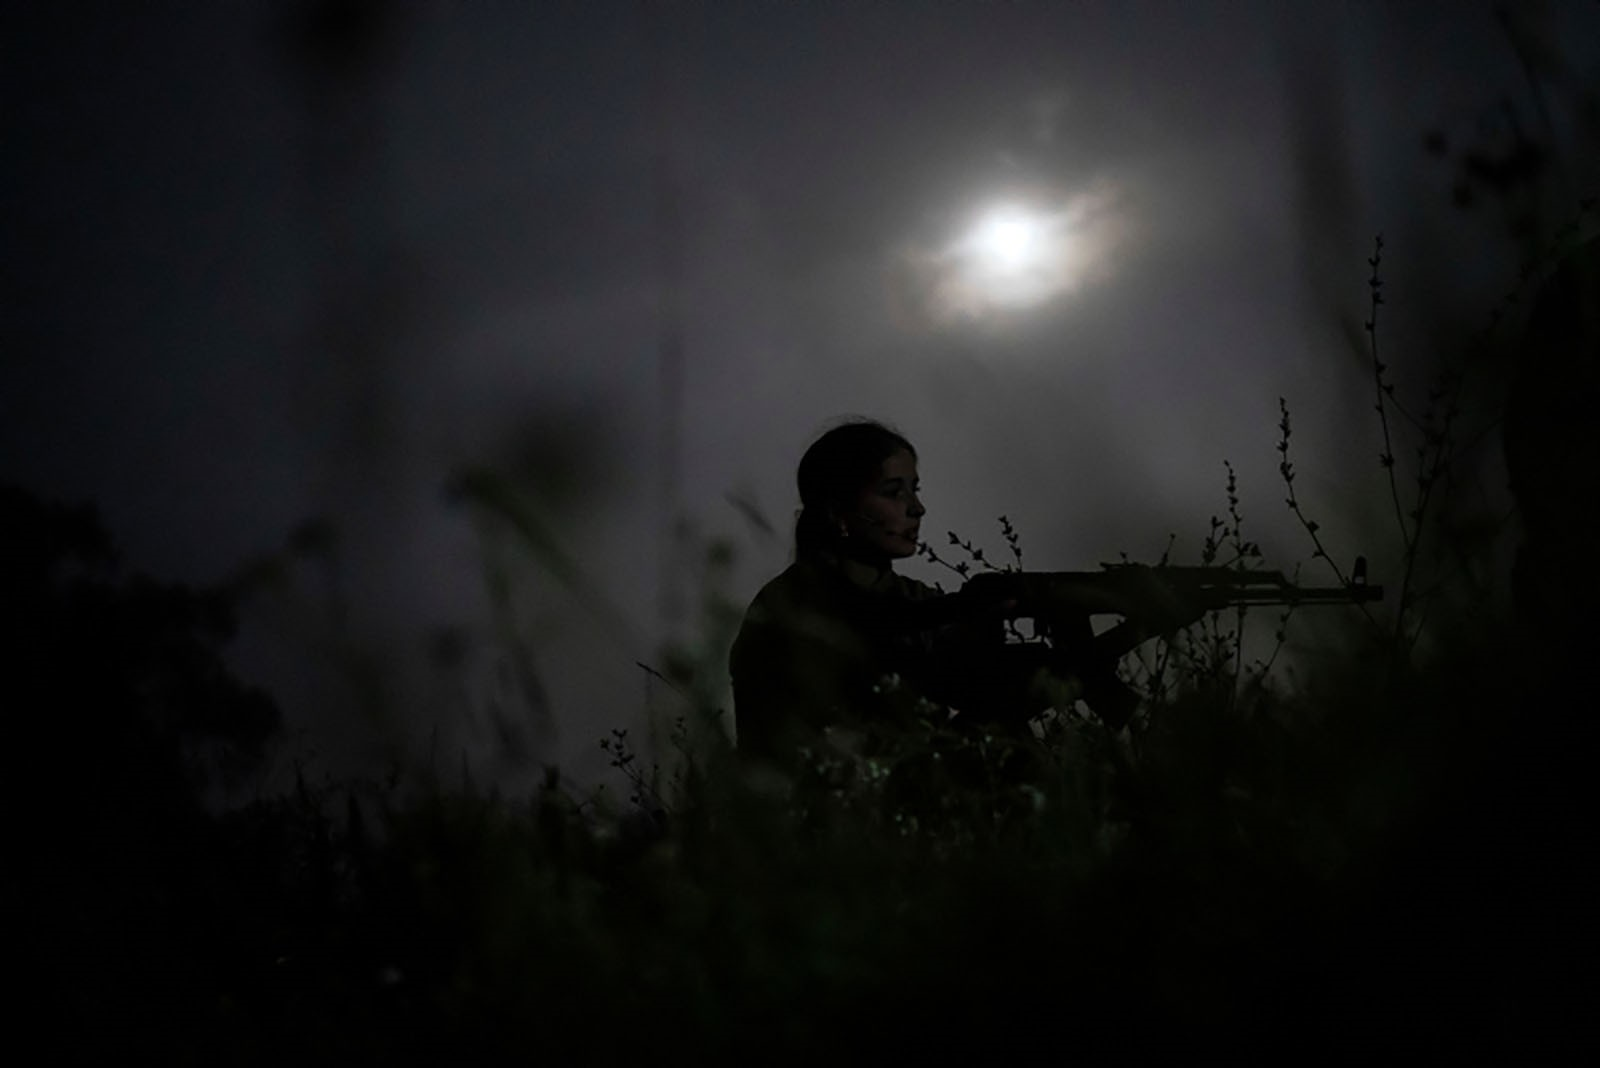 A young participant of the camp takes position with her unloaded AK-47 rifle during a night exercise.